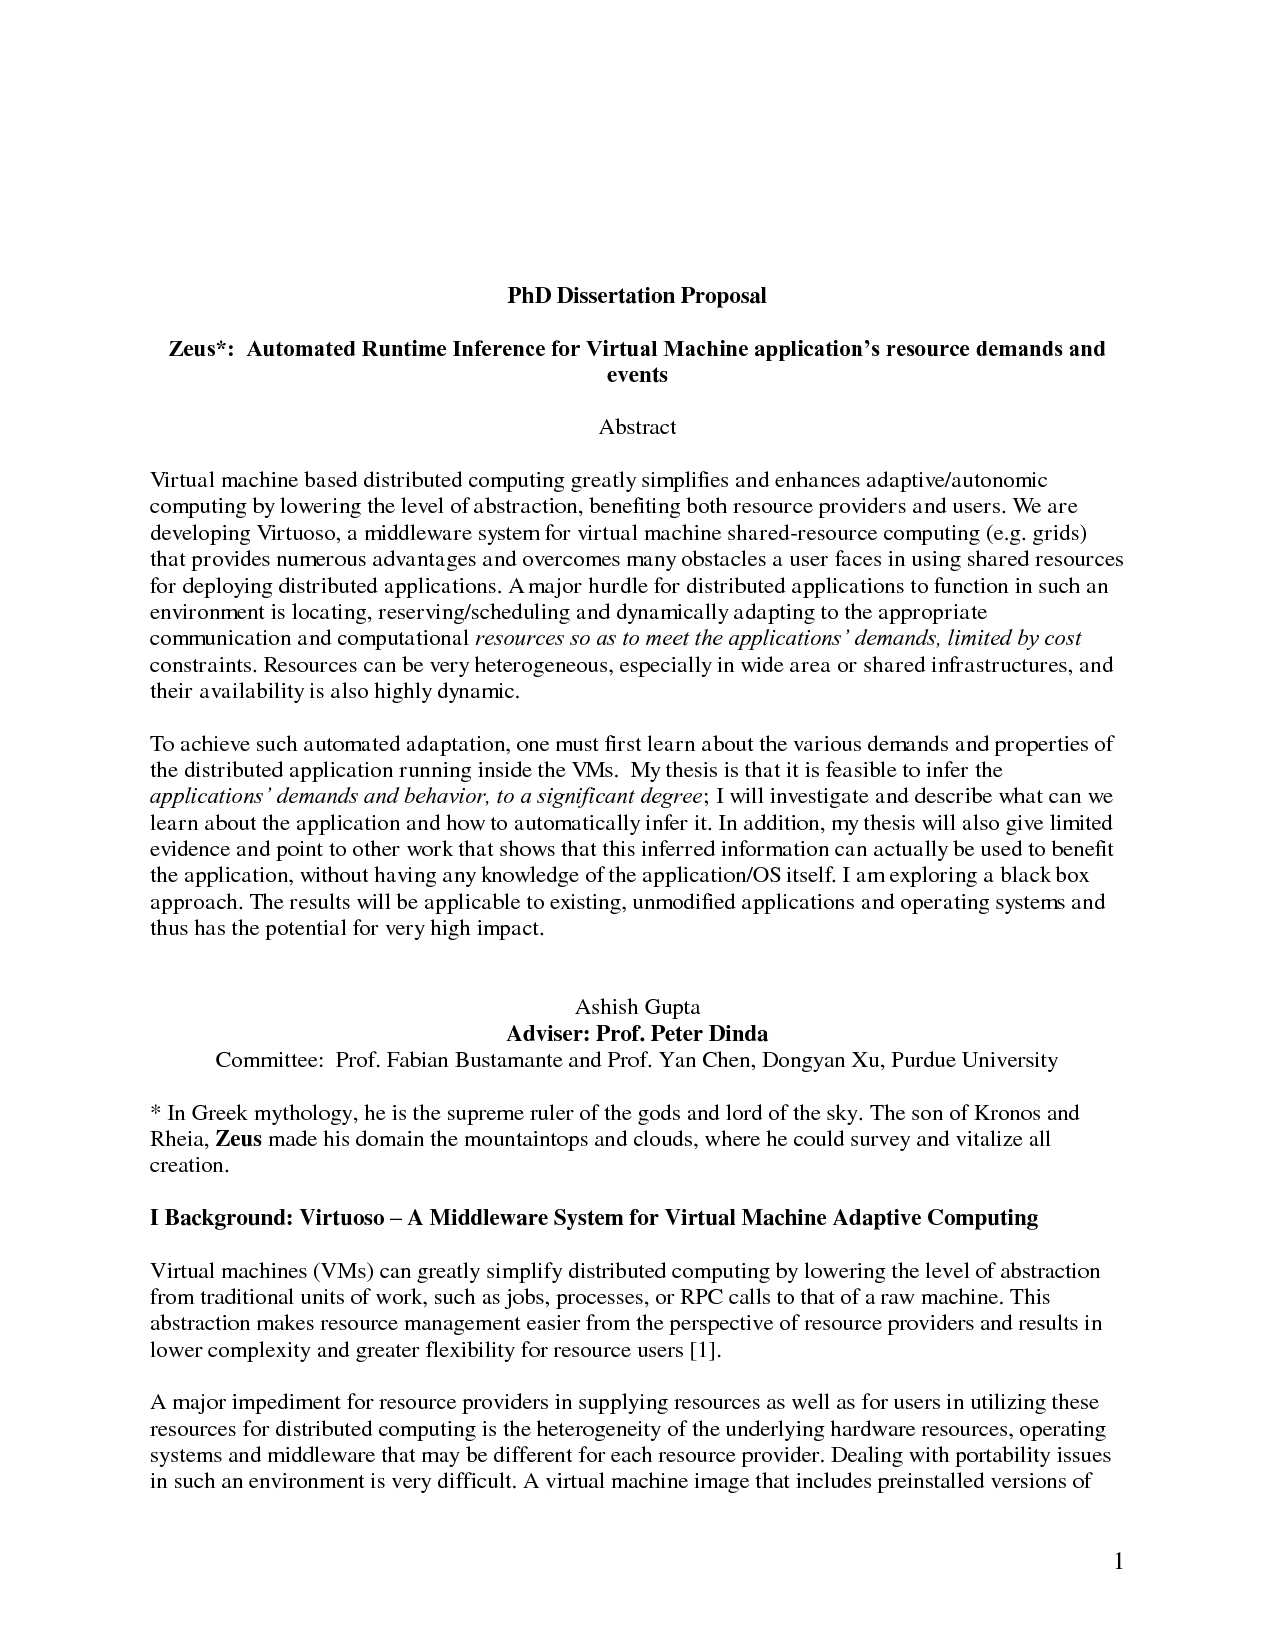 How to write an abstract for phd thesis